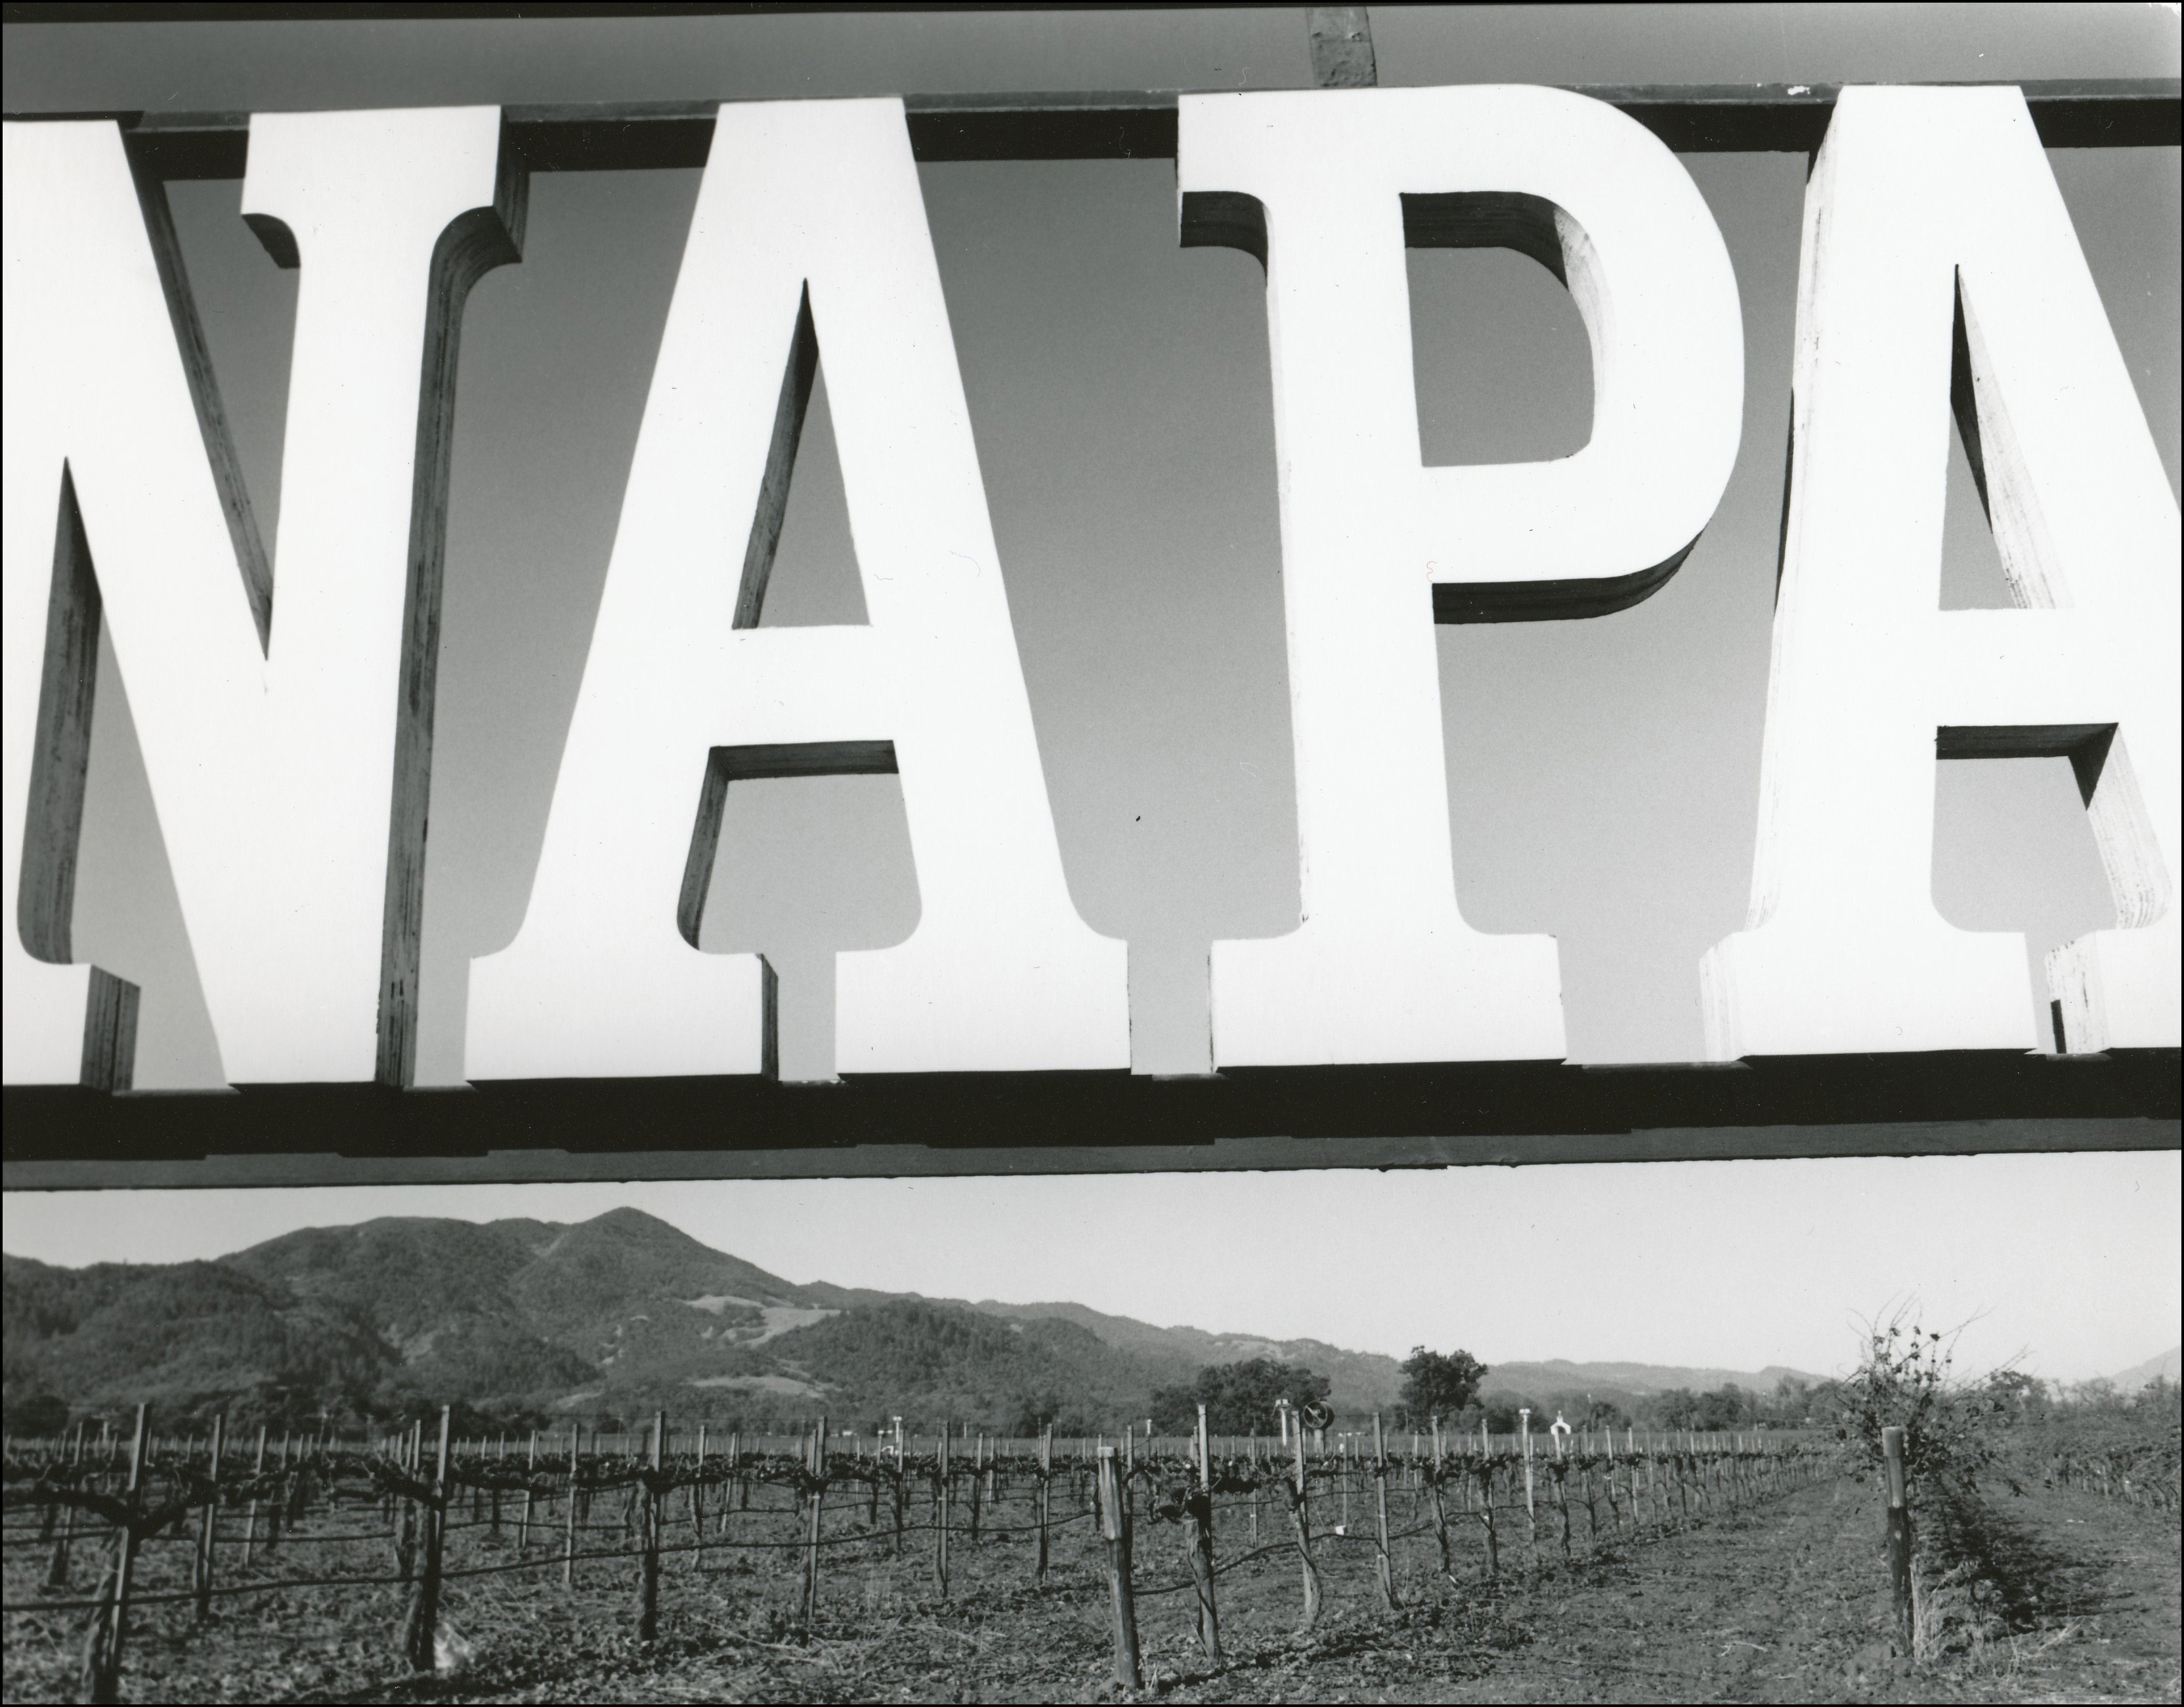 Large NAPA sign with vineyards in the background